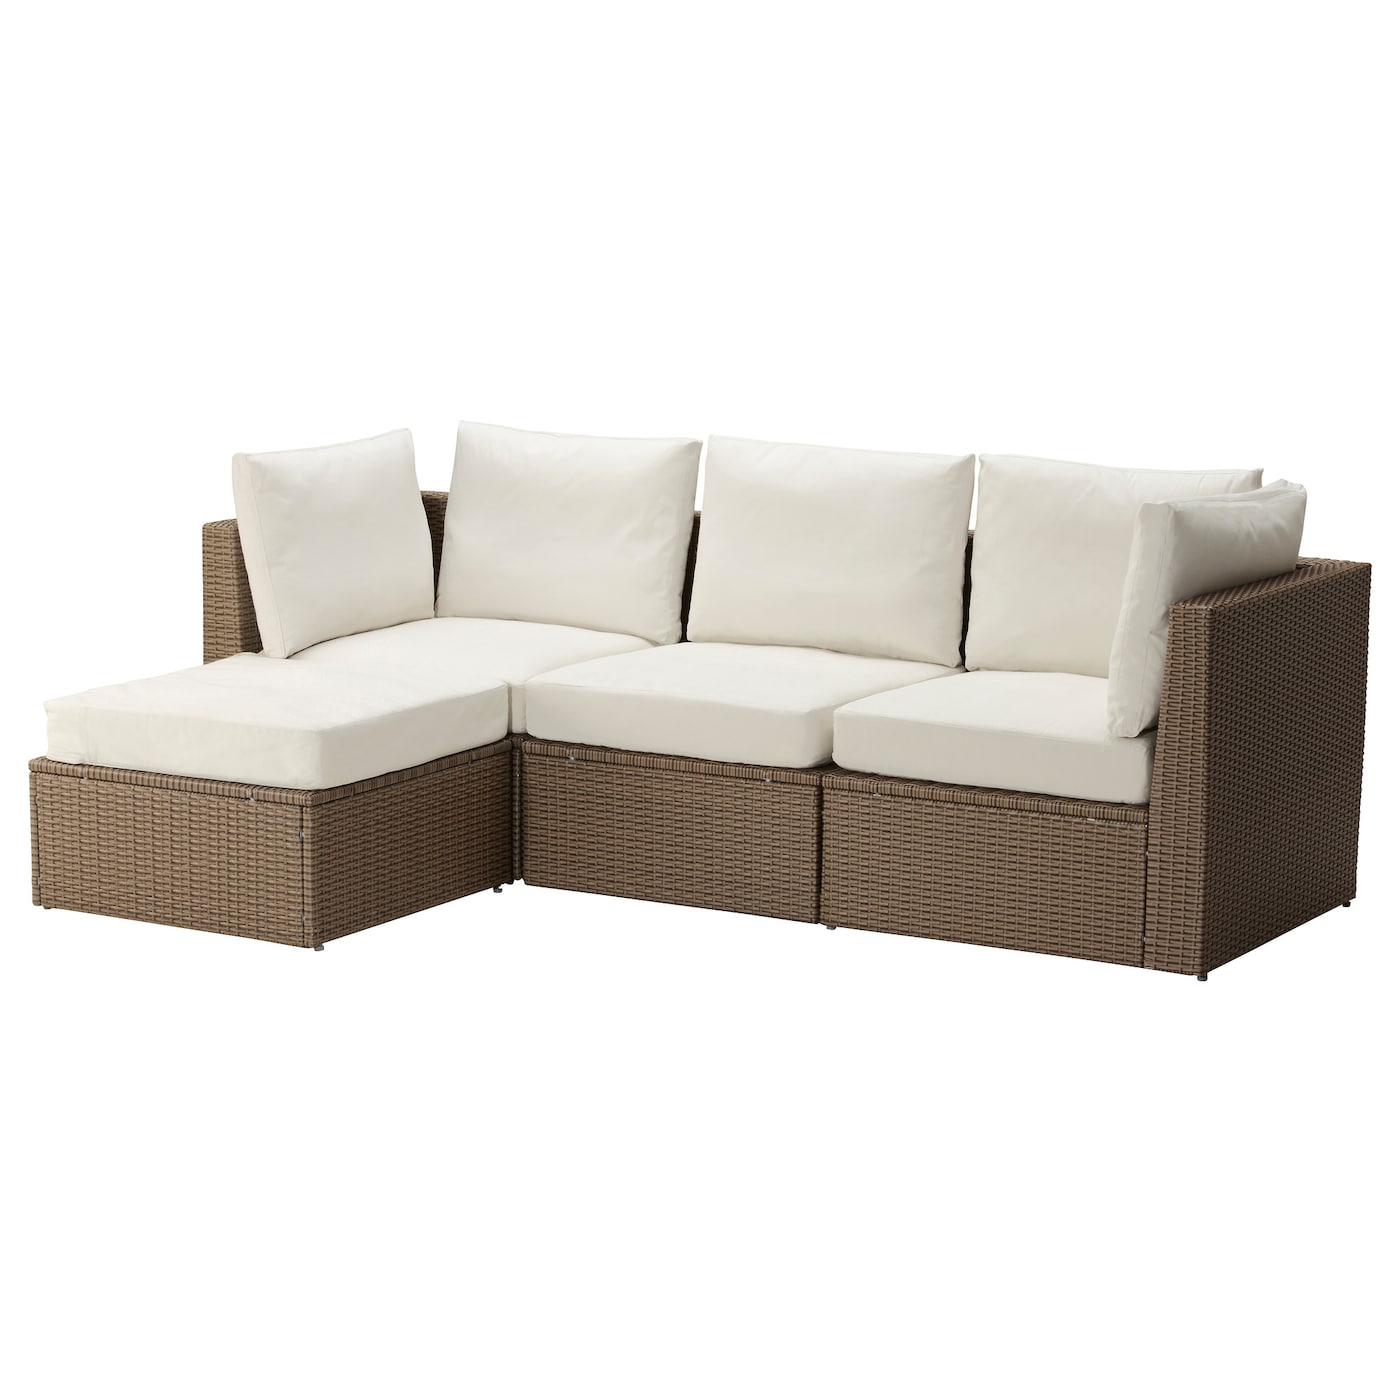 Outdoor & Garden Sofas Wooden & Rattan Furniture